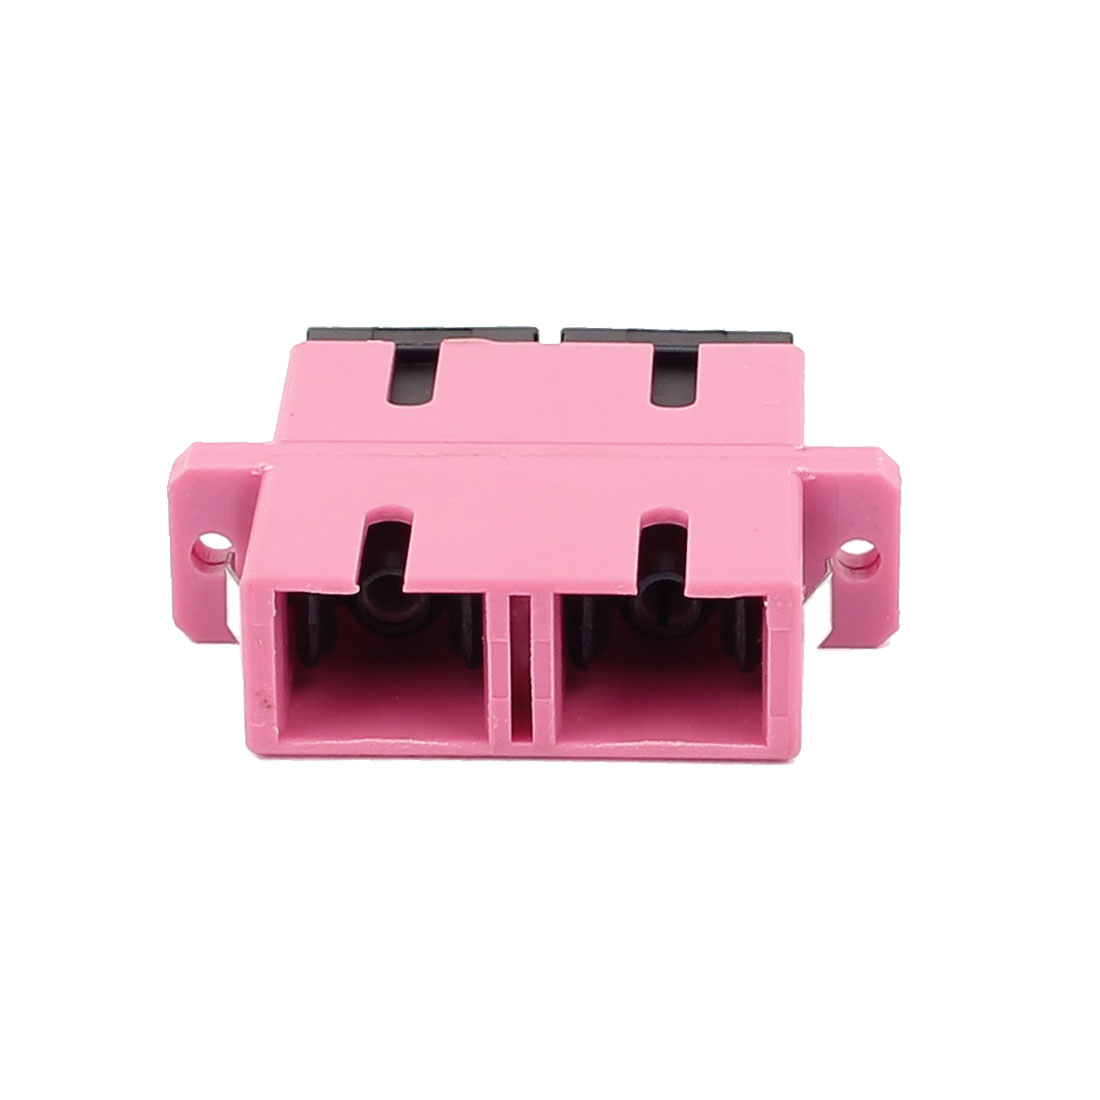 SC-SC Duplex MM SM Fiber Optical Flange Adapter Cable Connector